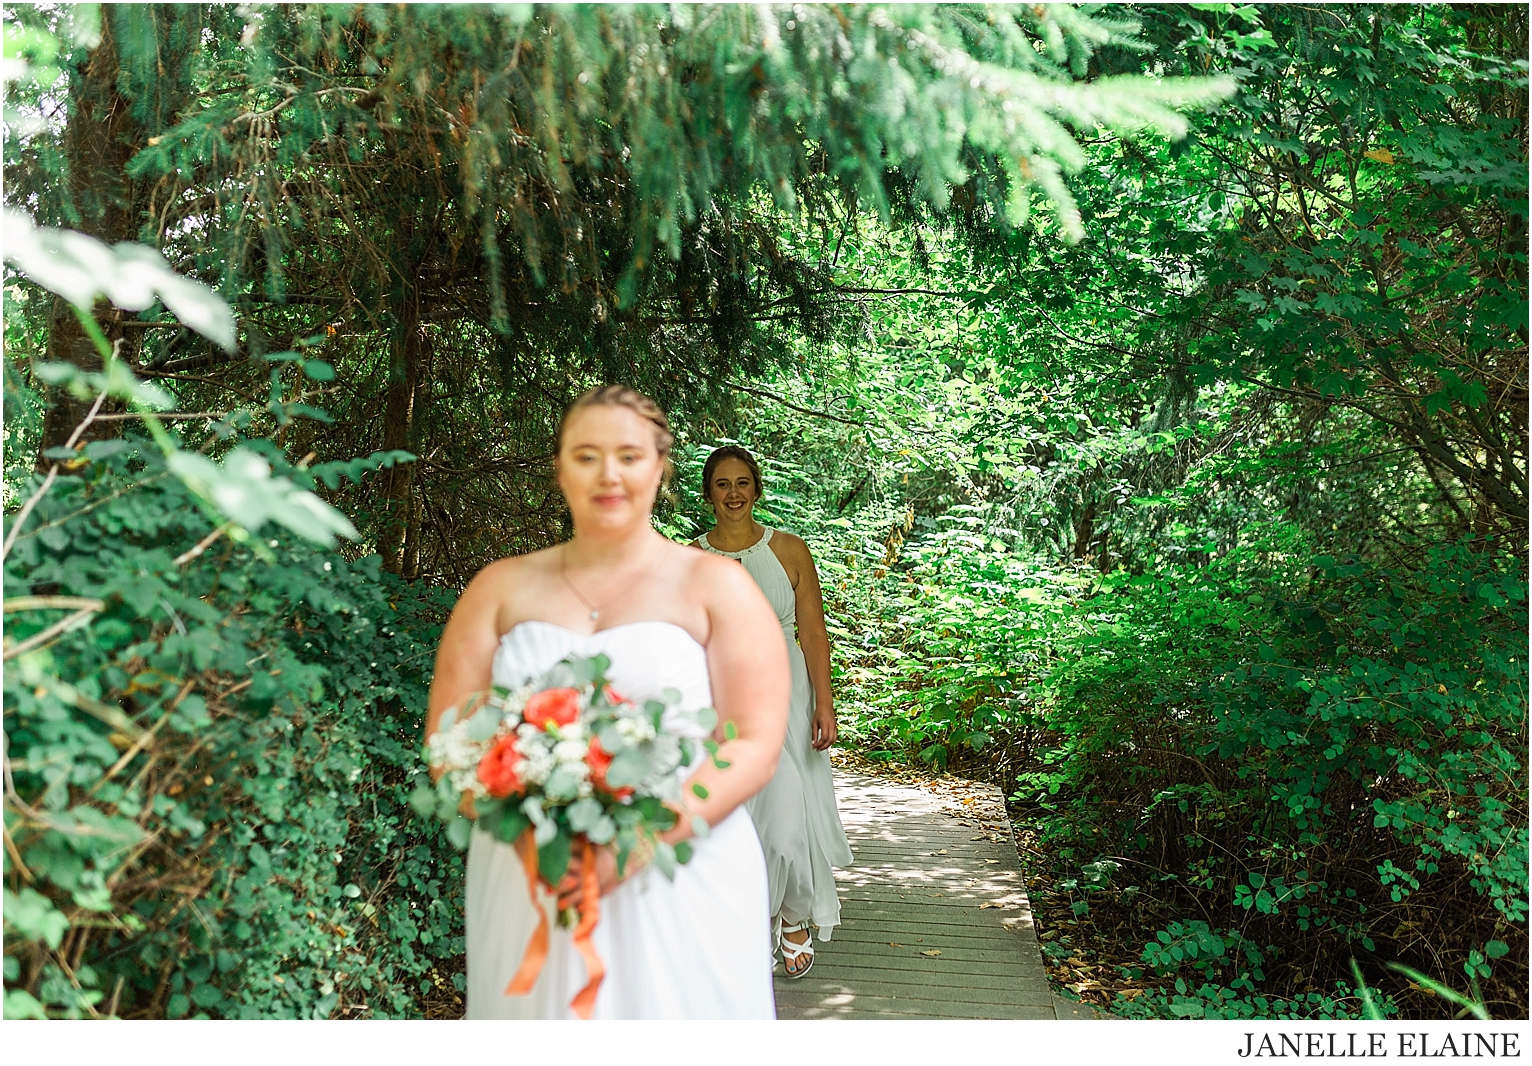 liz and christina lanning-first look and portraits-luther burbank park-janelle elaine photography-19.jpg